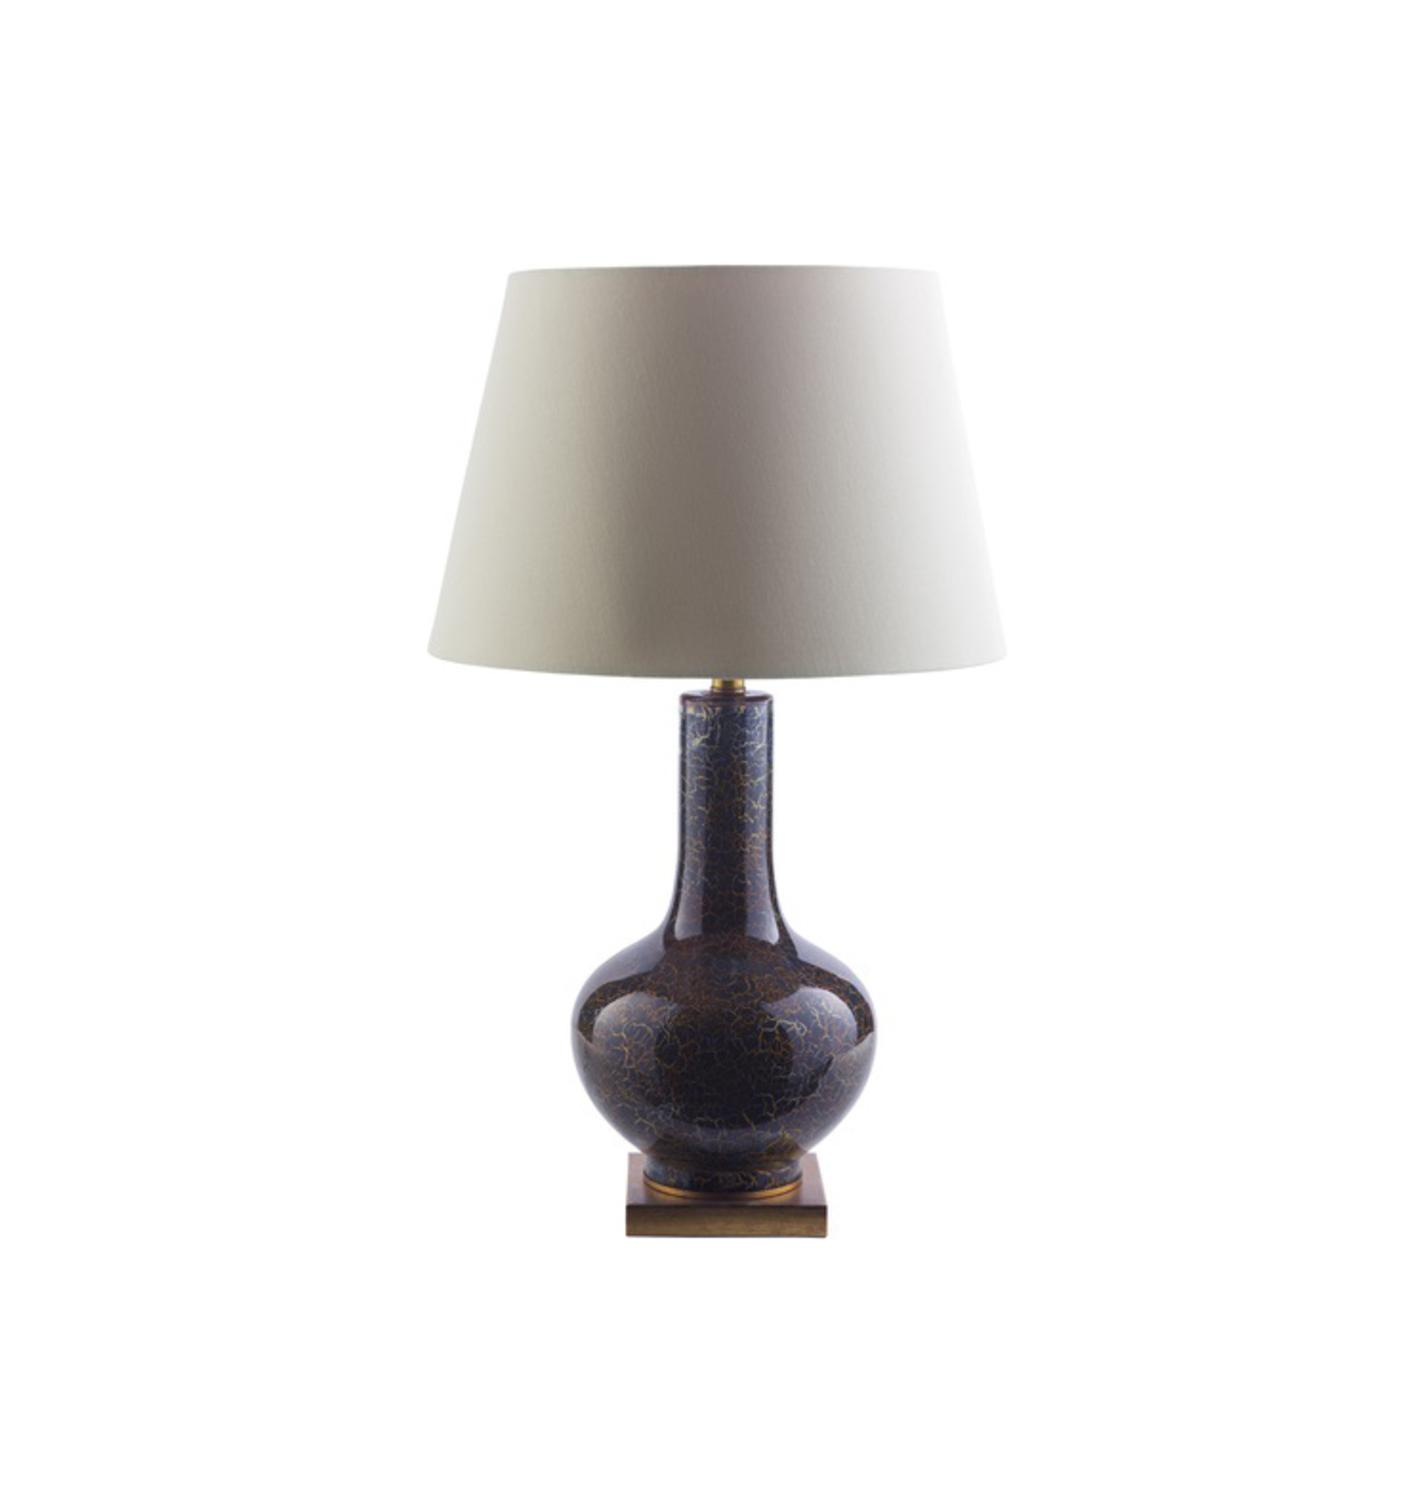 Ivory ceramic urn table lamp for Table lamps under 50